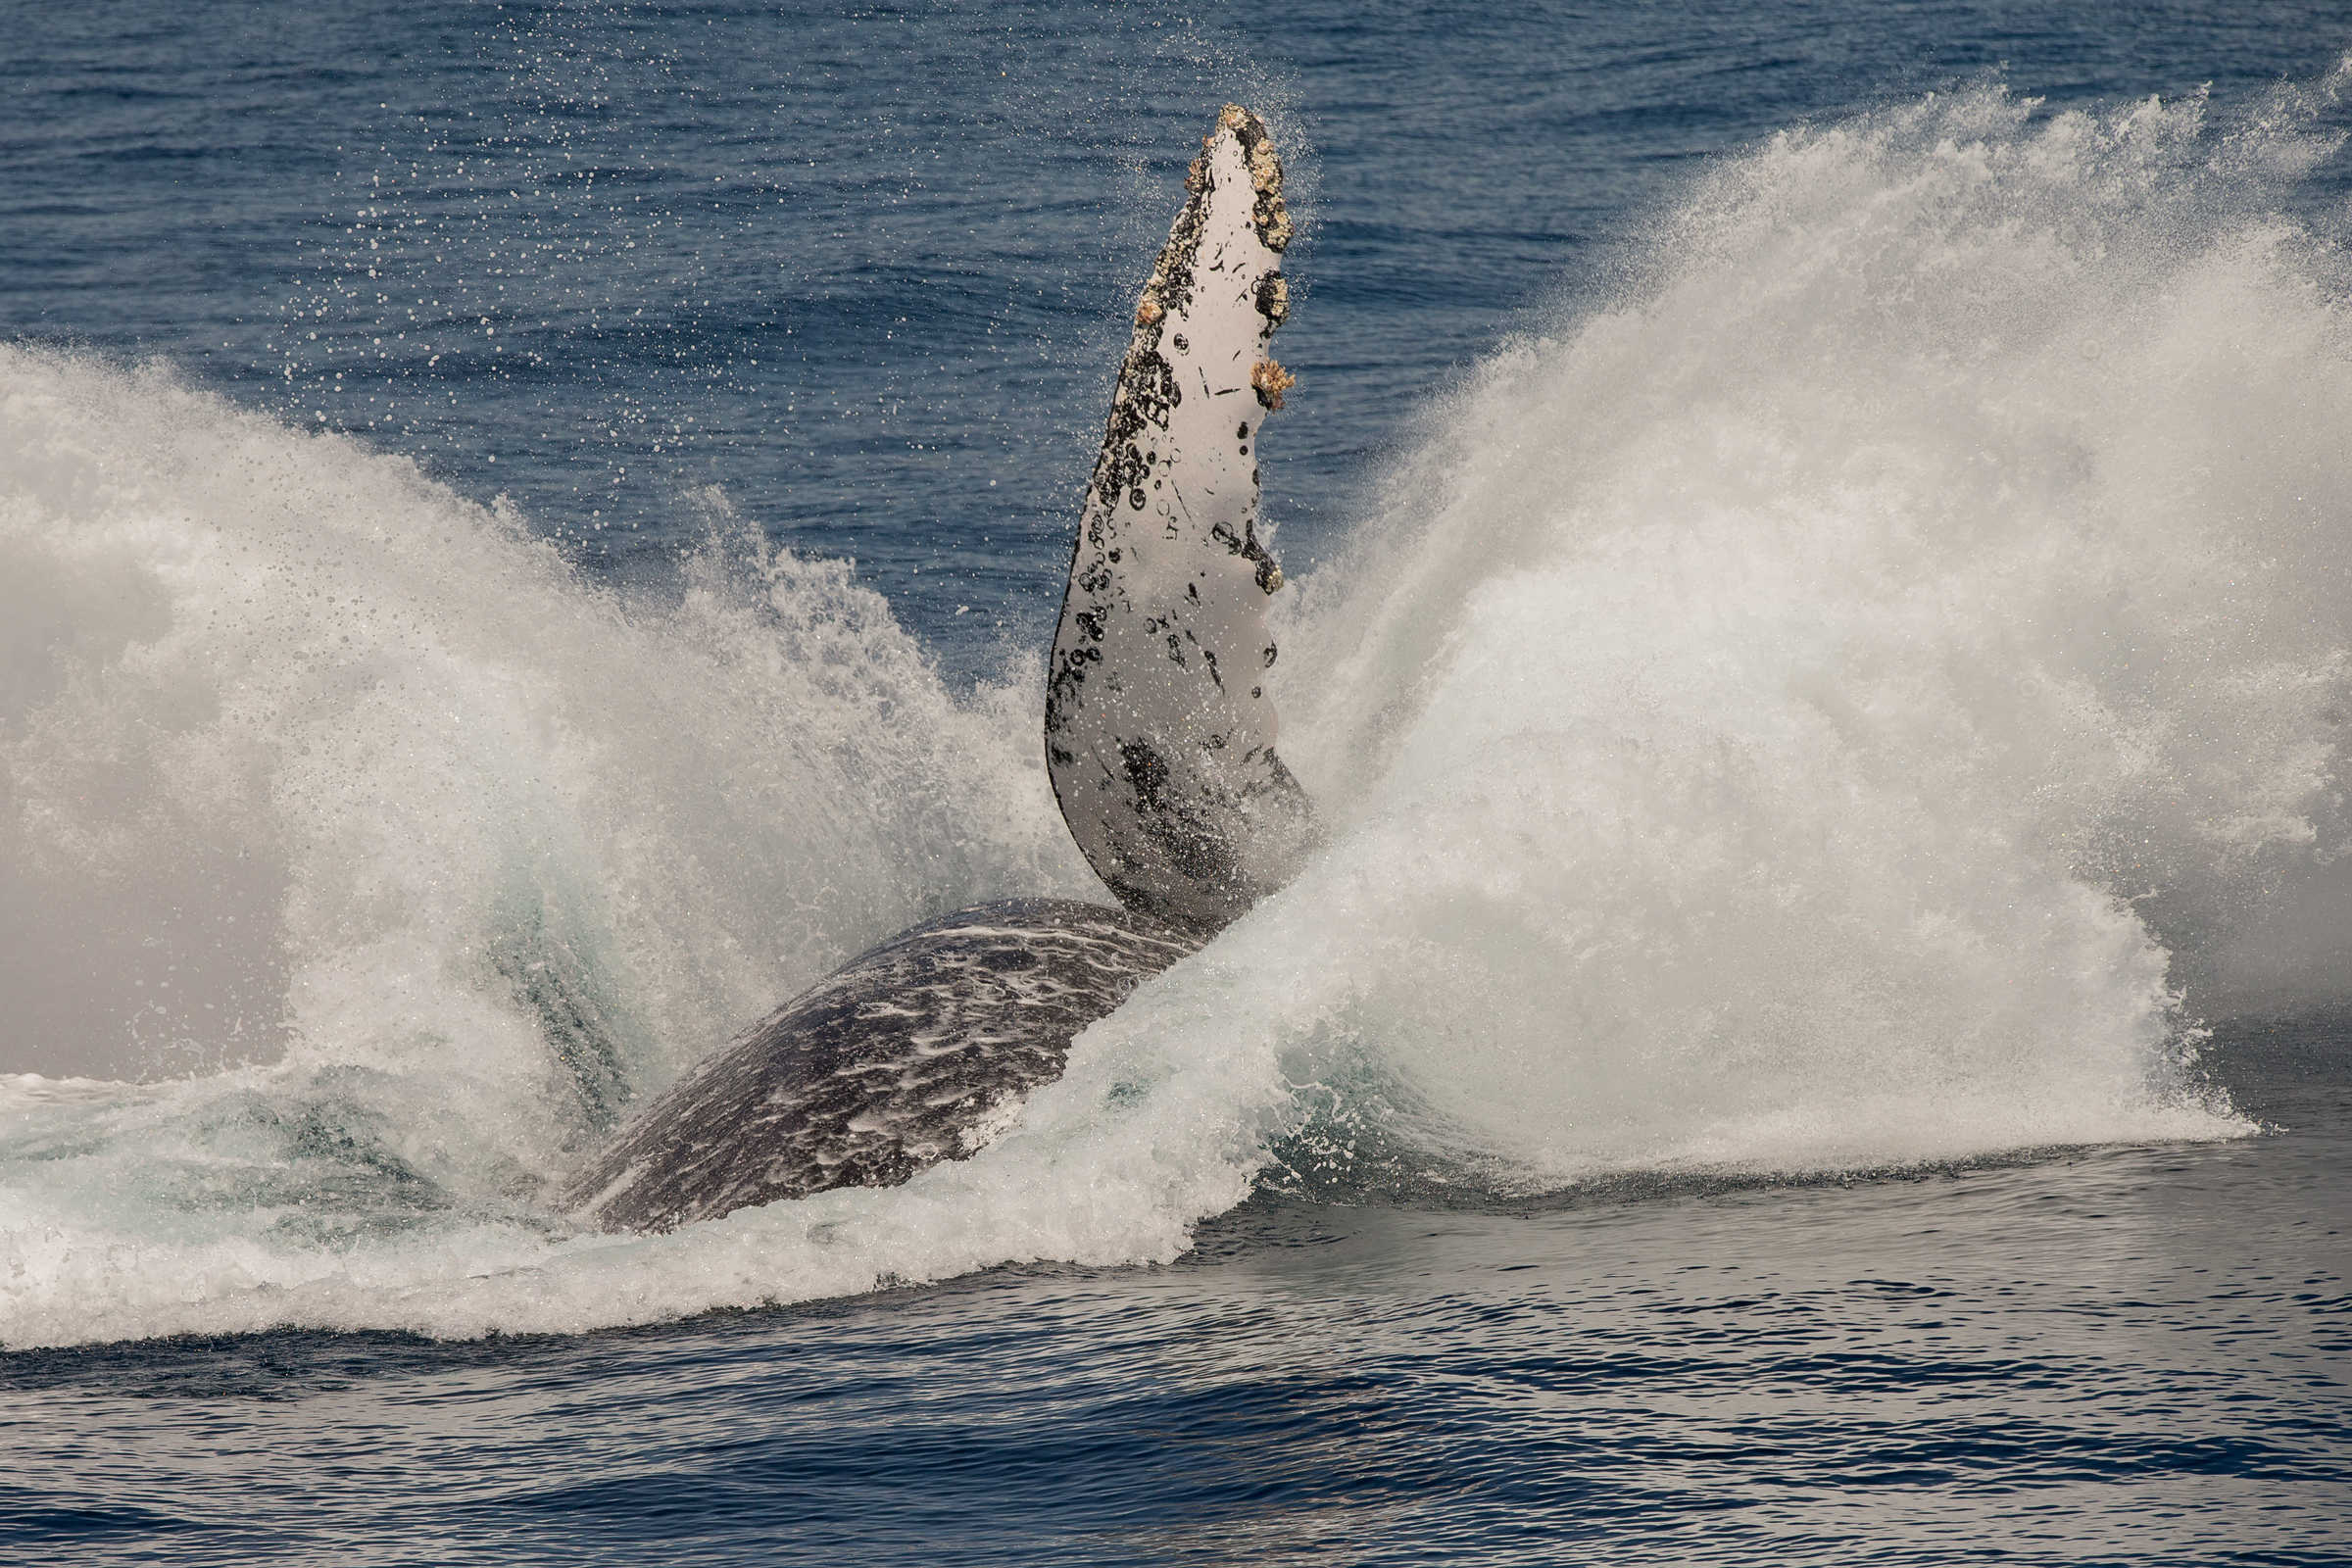 BAJA CALIFORNIA: THE LAST KINGDOM OF THE WHALES 2018 (BIRDQUEST/WILDIMAGES)